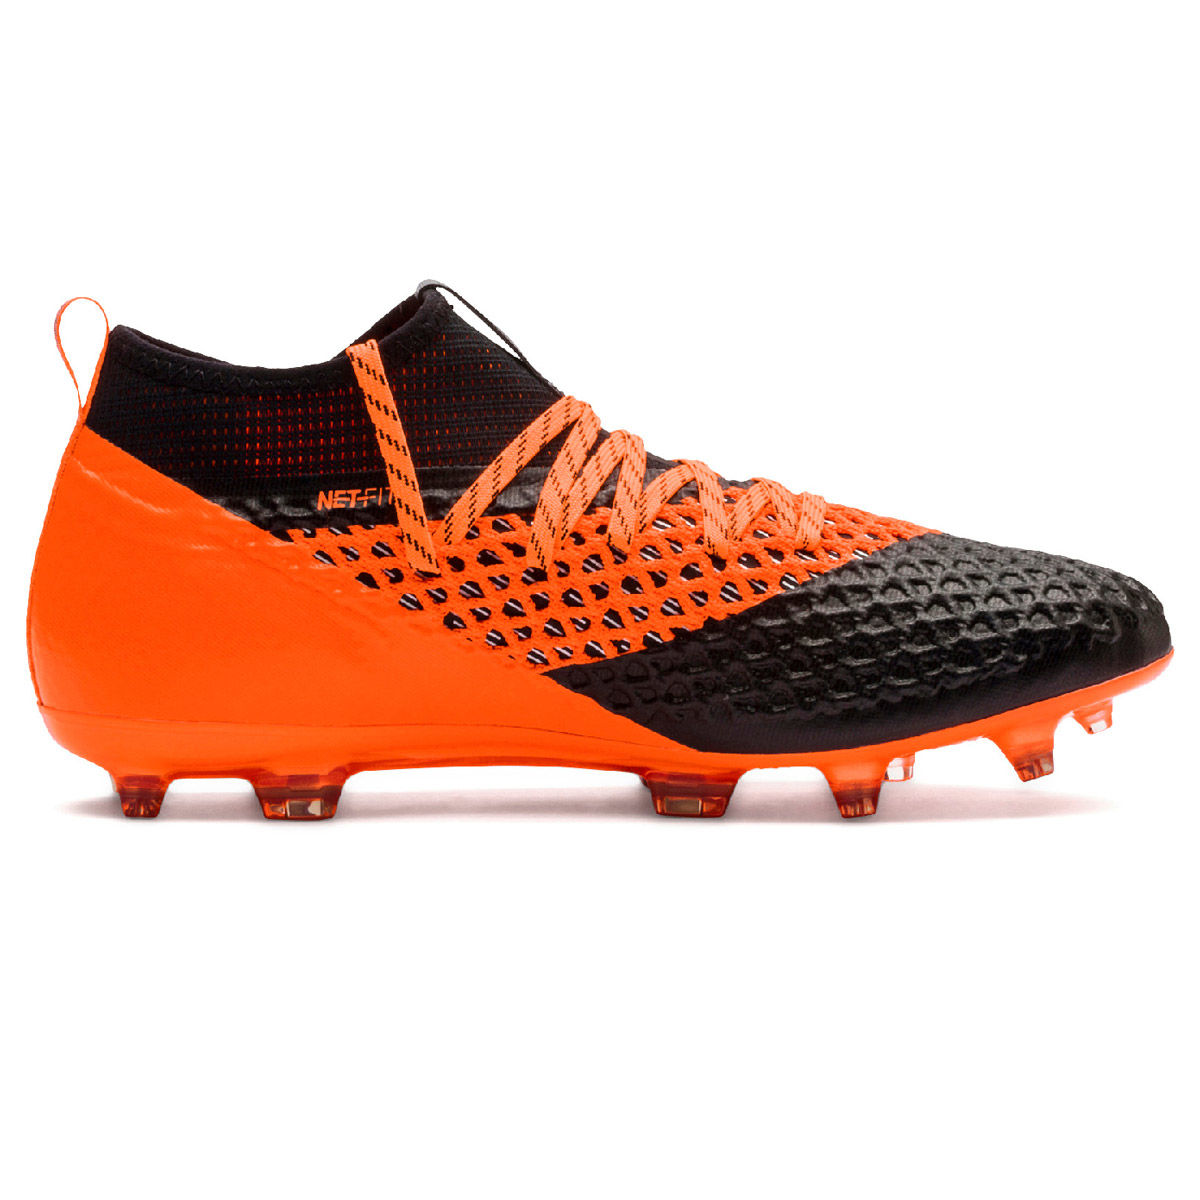 Puma Future 2.2 Mens Firm Ground Soccer Cleat